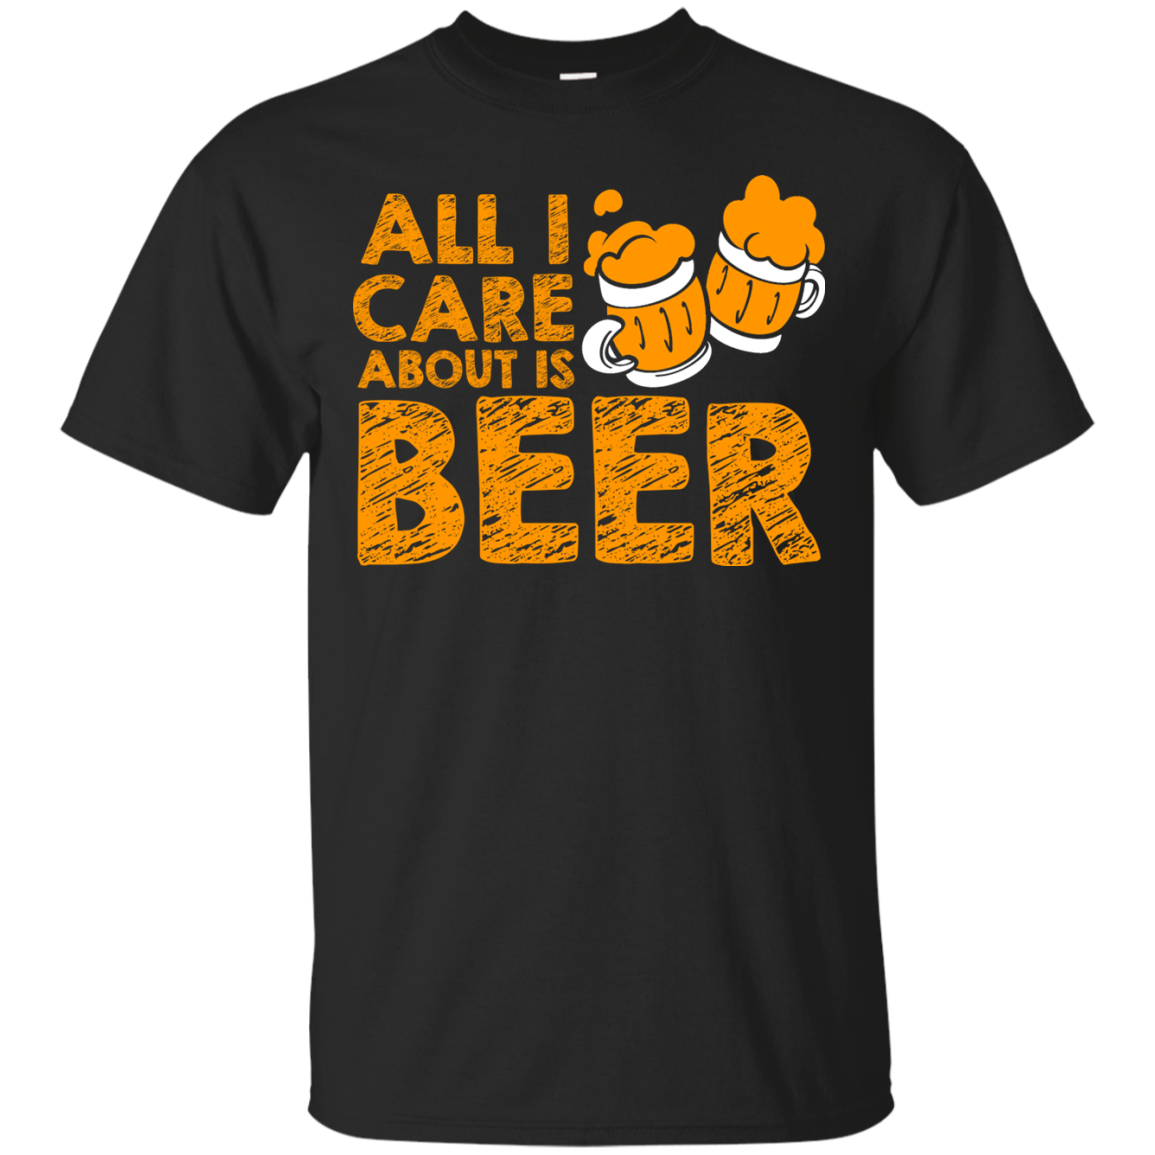 ALL I CARE ABOUT IS BEER T-Shirt & Hoodie, Sweatshirt